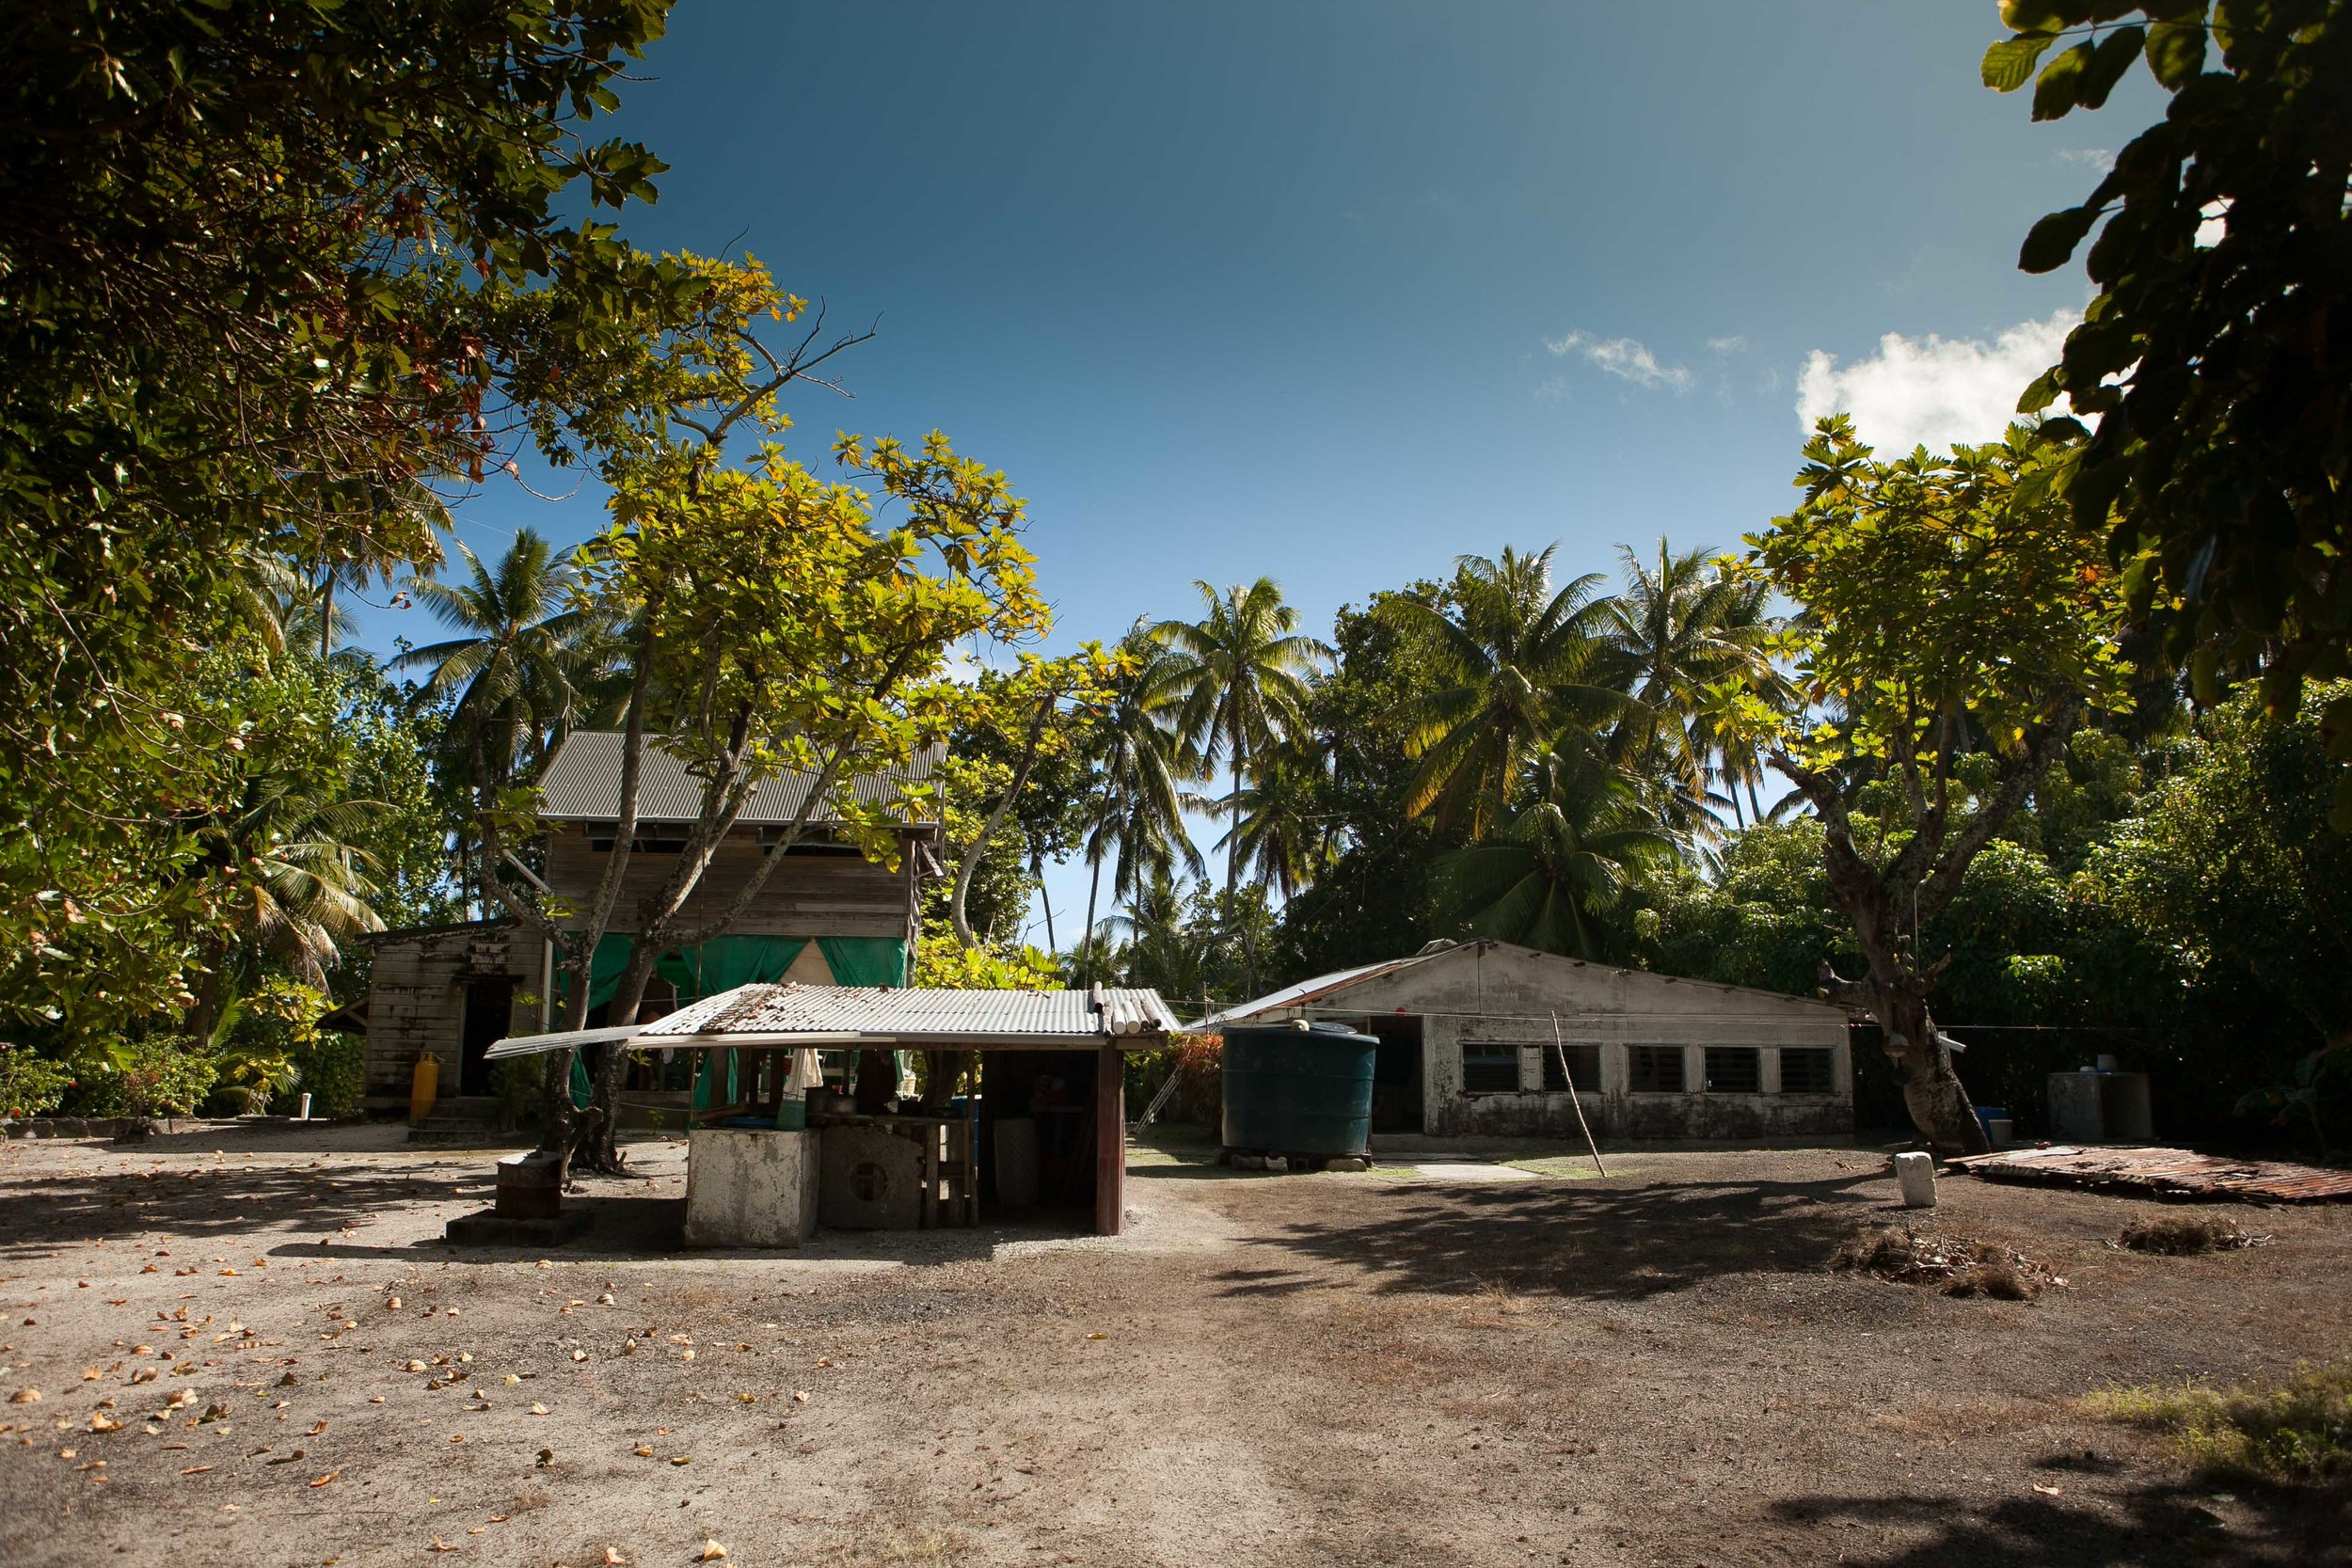 The original house on the right, Tom Neal's former residence, with the ranger's building to the left. Suwarrow, Cook Islands.